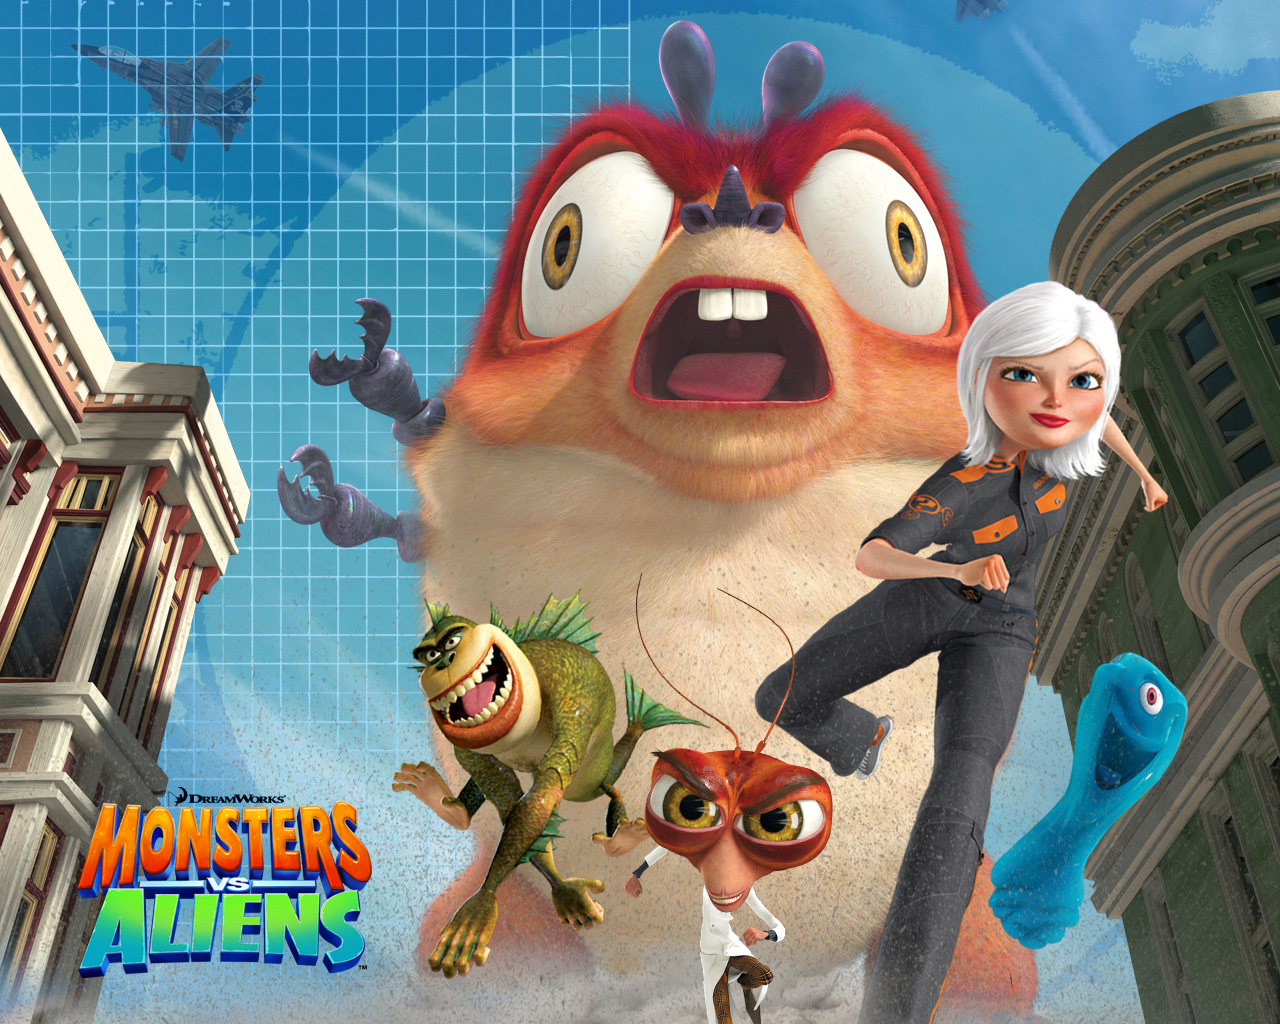 Monsters Vs Alines Movie